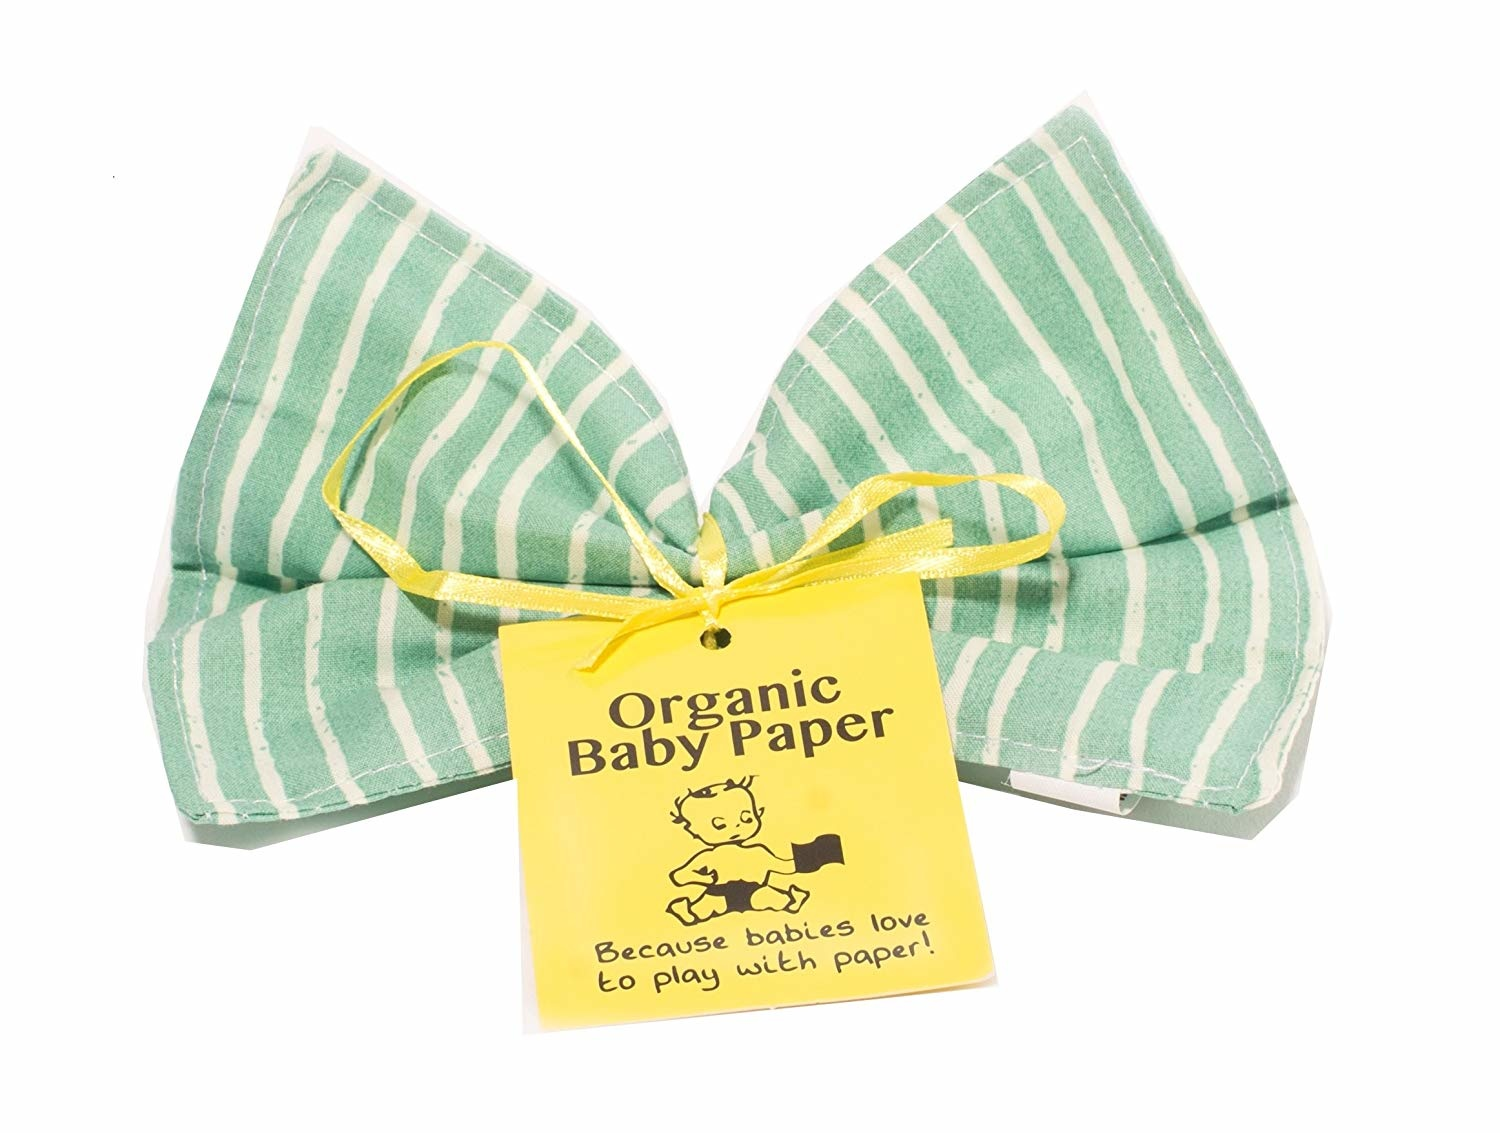 Baby Paper Baby Crinkle Paper - Organic